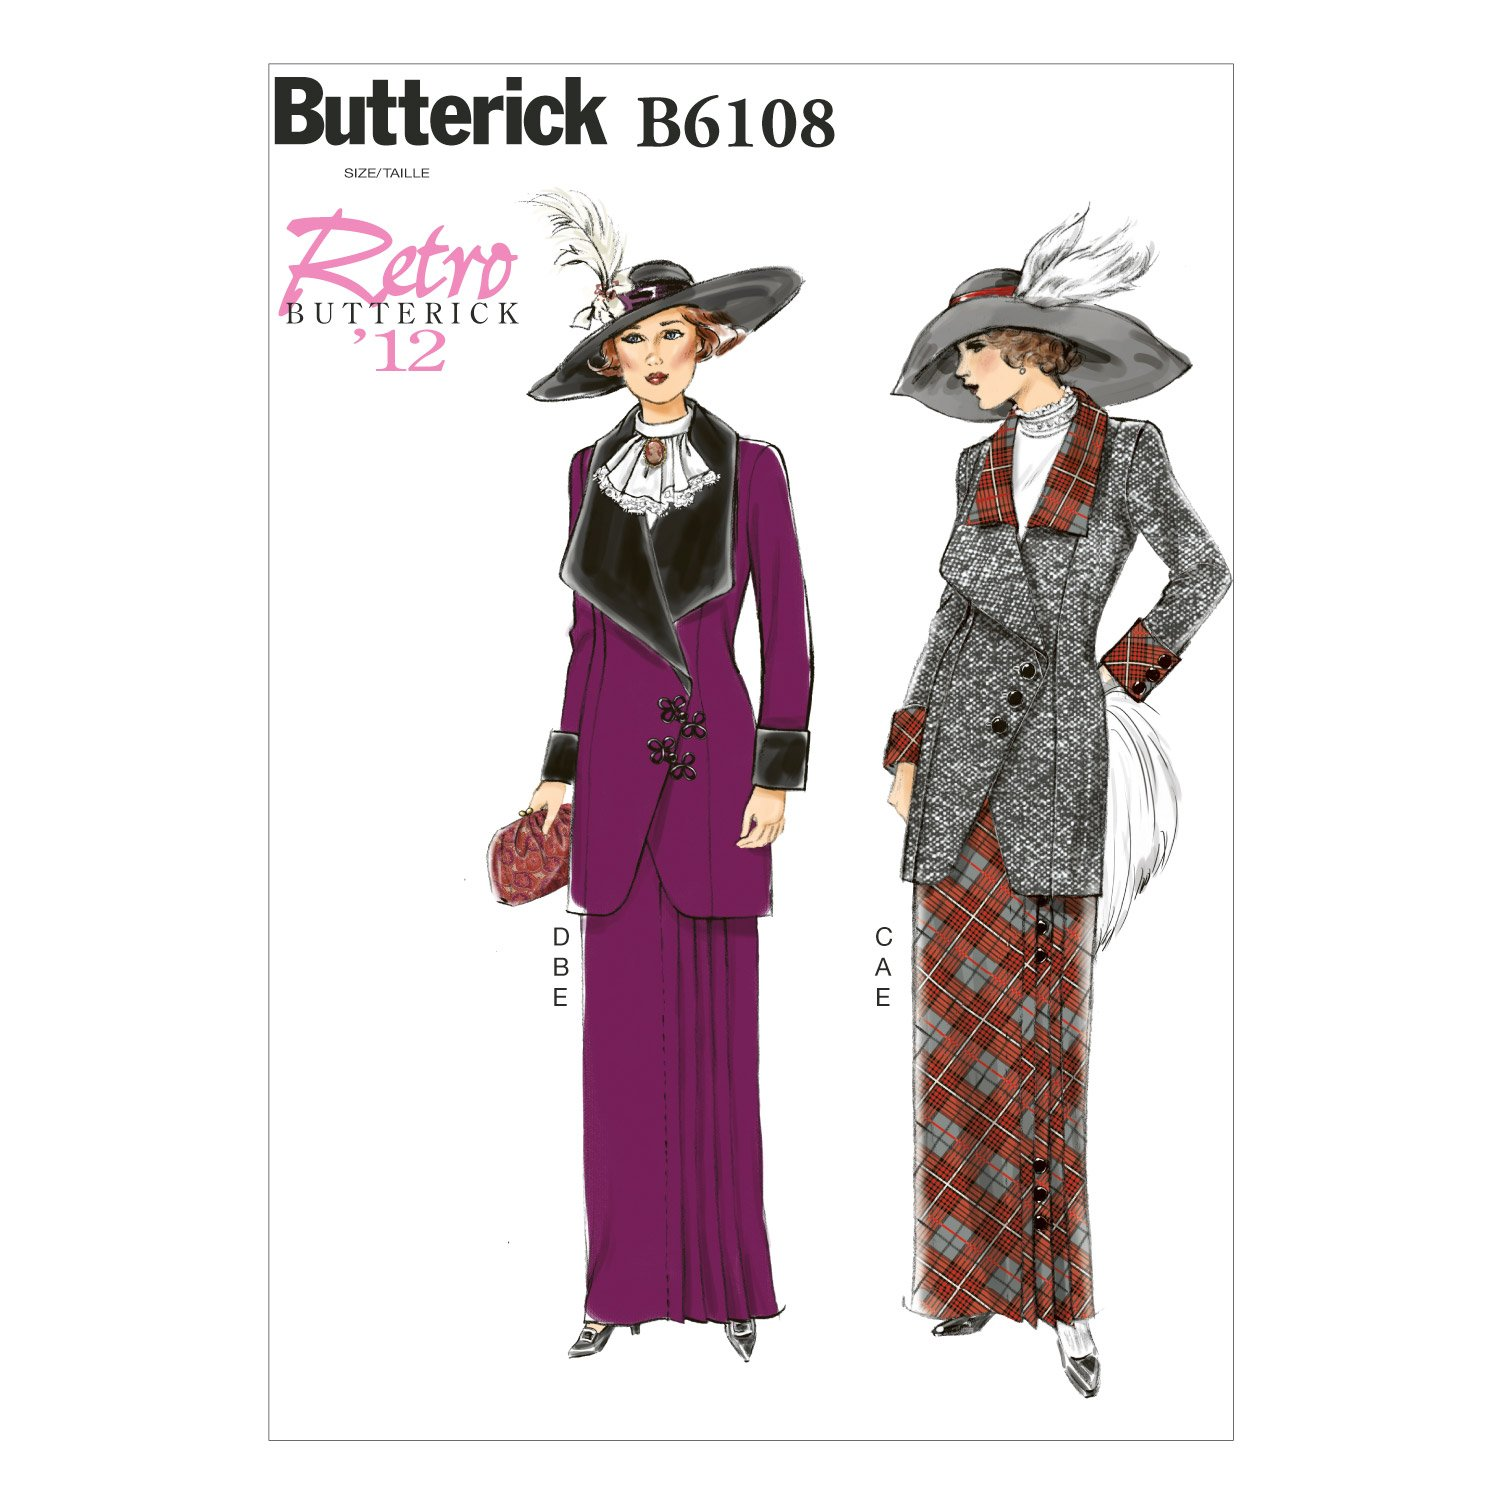 Titanic Edwardian Sewing Patterns- Dresses, Blouses, Corsets, Costumes 1910s Butterick Patterns B6108 Misses Jacket Bib and Skirt Size A5 $8.35 AT vintagedancer.com